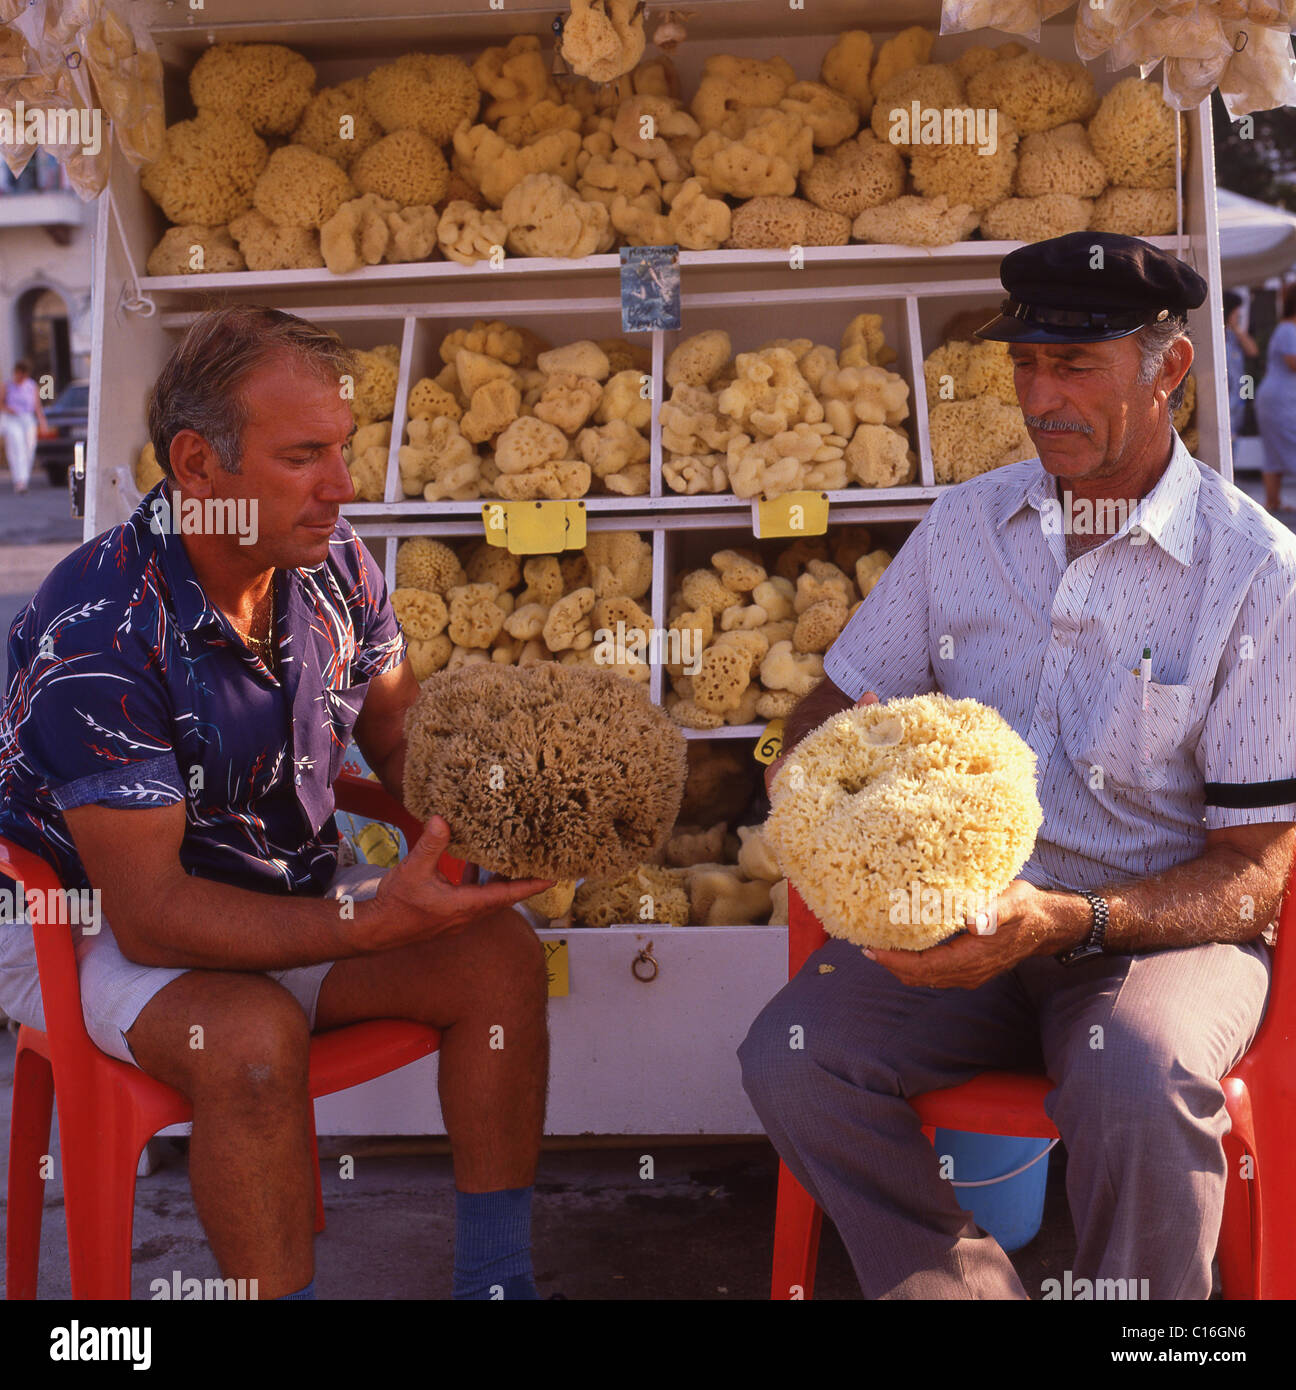 Man selling sponges, Kos, The Dodecanese, South Aegean Periphery, Greece - Stock Image